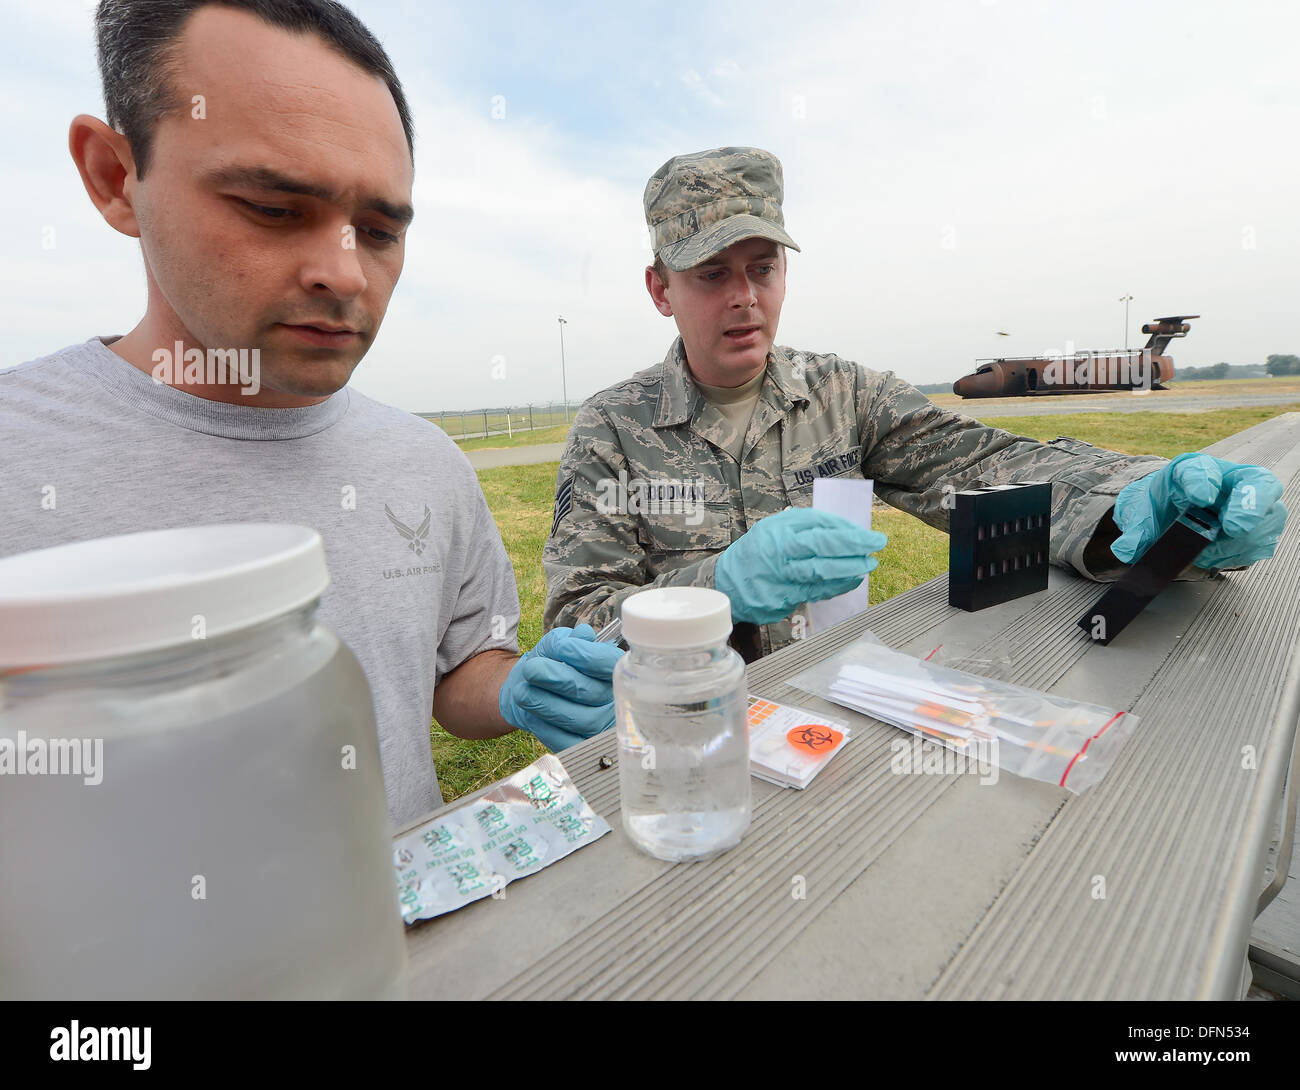 Senior Airman Joseph Davis, (left) 436th Civil Engineer Squadron, Emergency Management Section, and Staff Sgt. Aaron Goodman, 436th Medical Group, Biological-Environmental section, test water for contaminants and purity during a training exercise at Dover - Stock Image